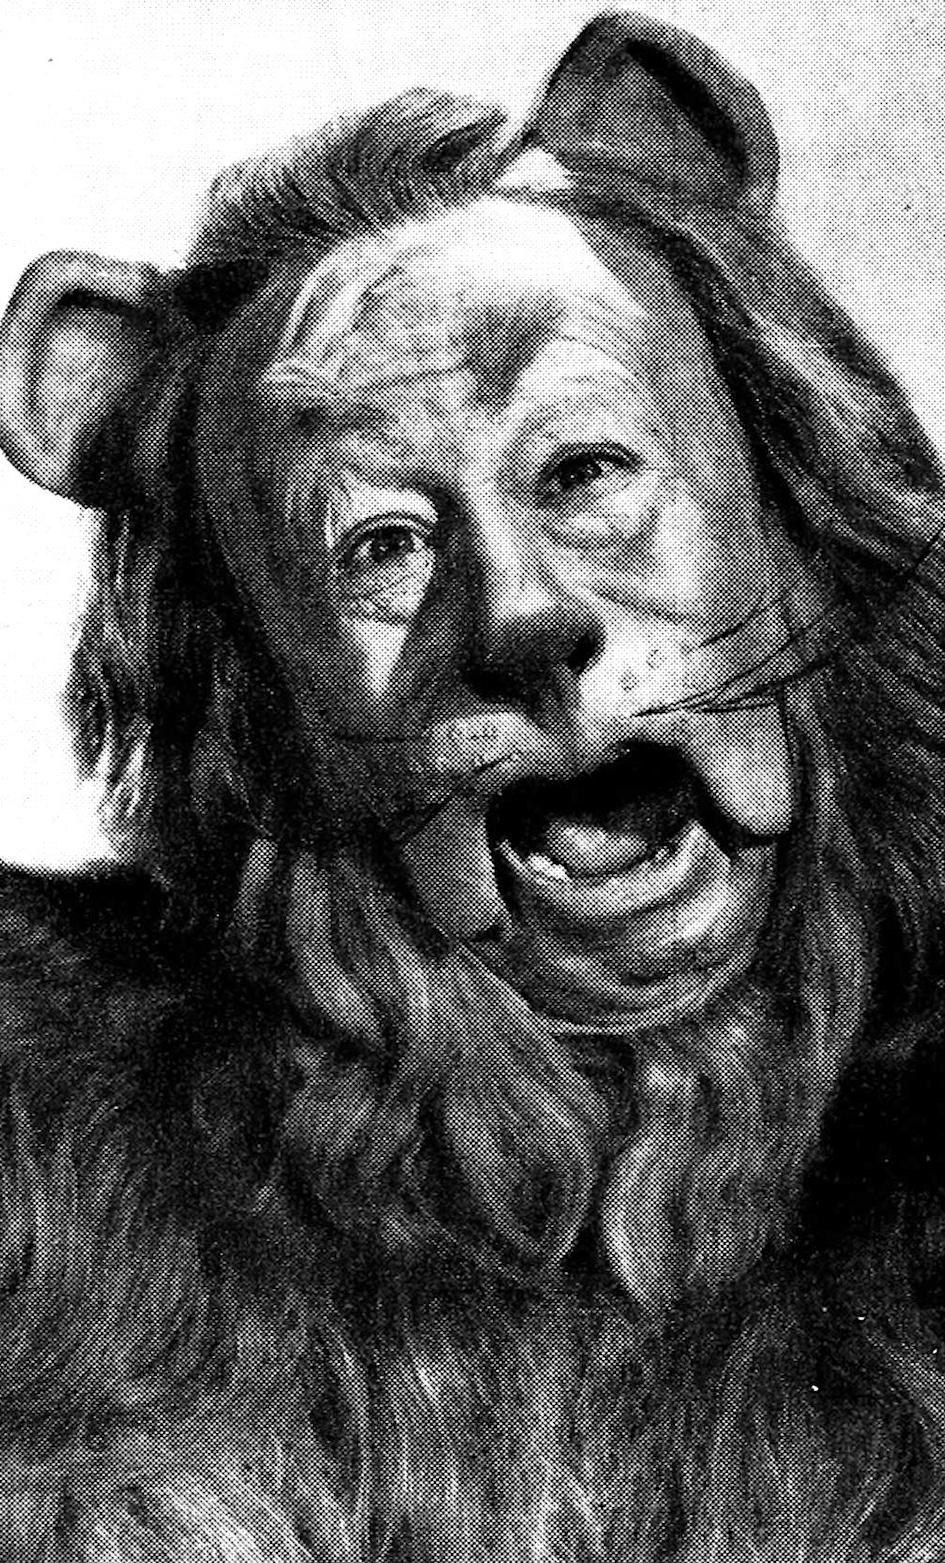 Bert Lahr as the Cowardly Lion in the 1939 film 'The Wizard Of Oz'